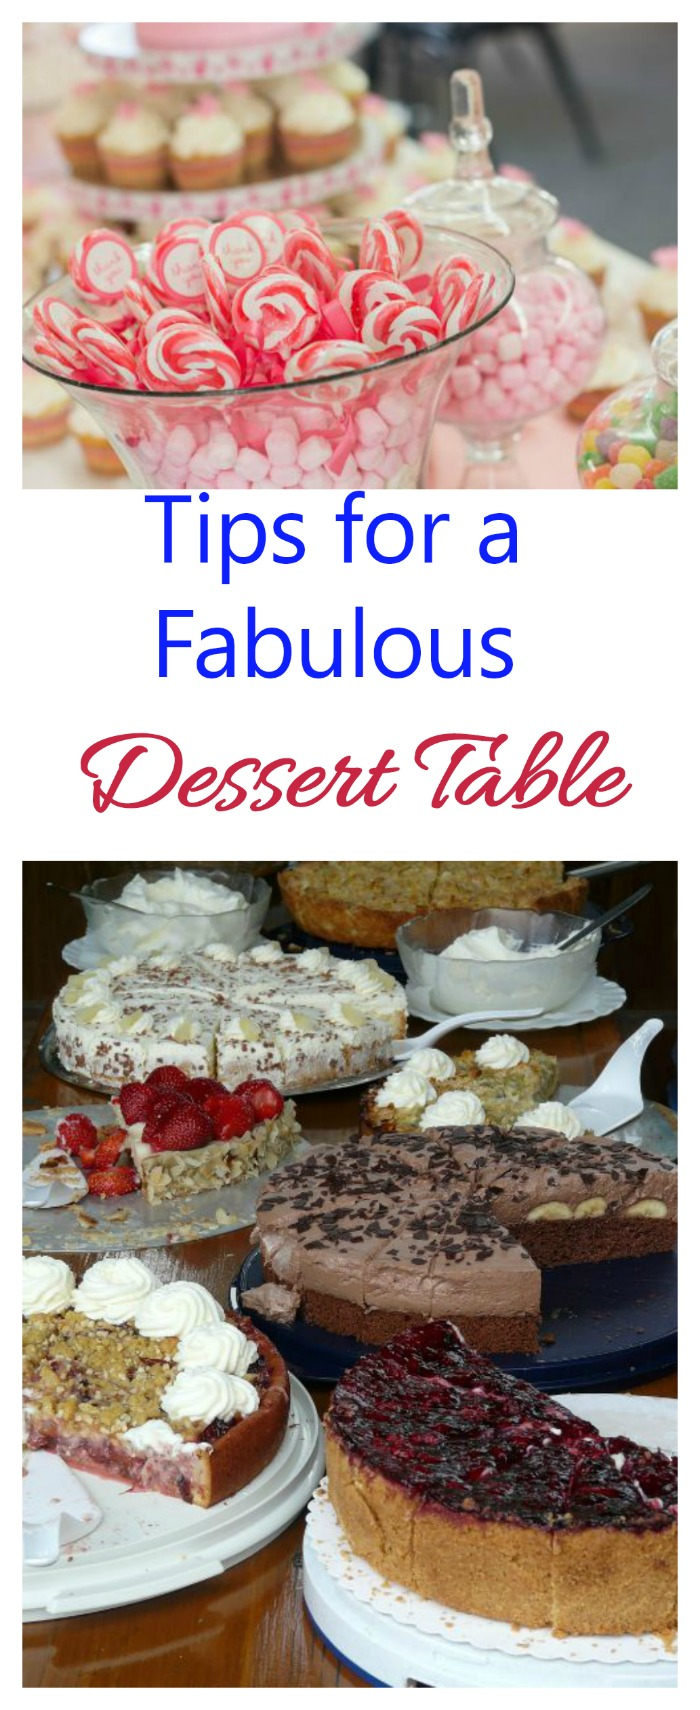 Treats table ideas